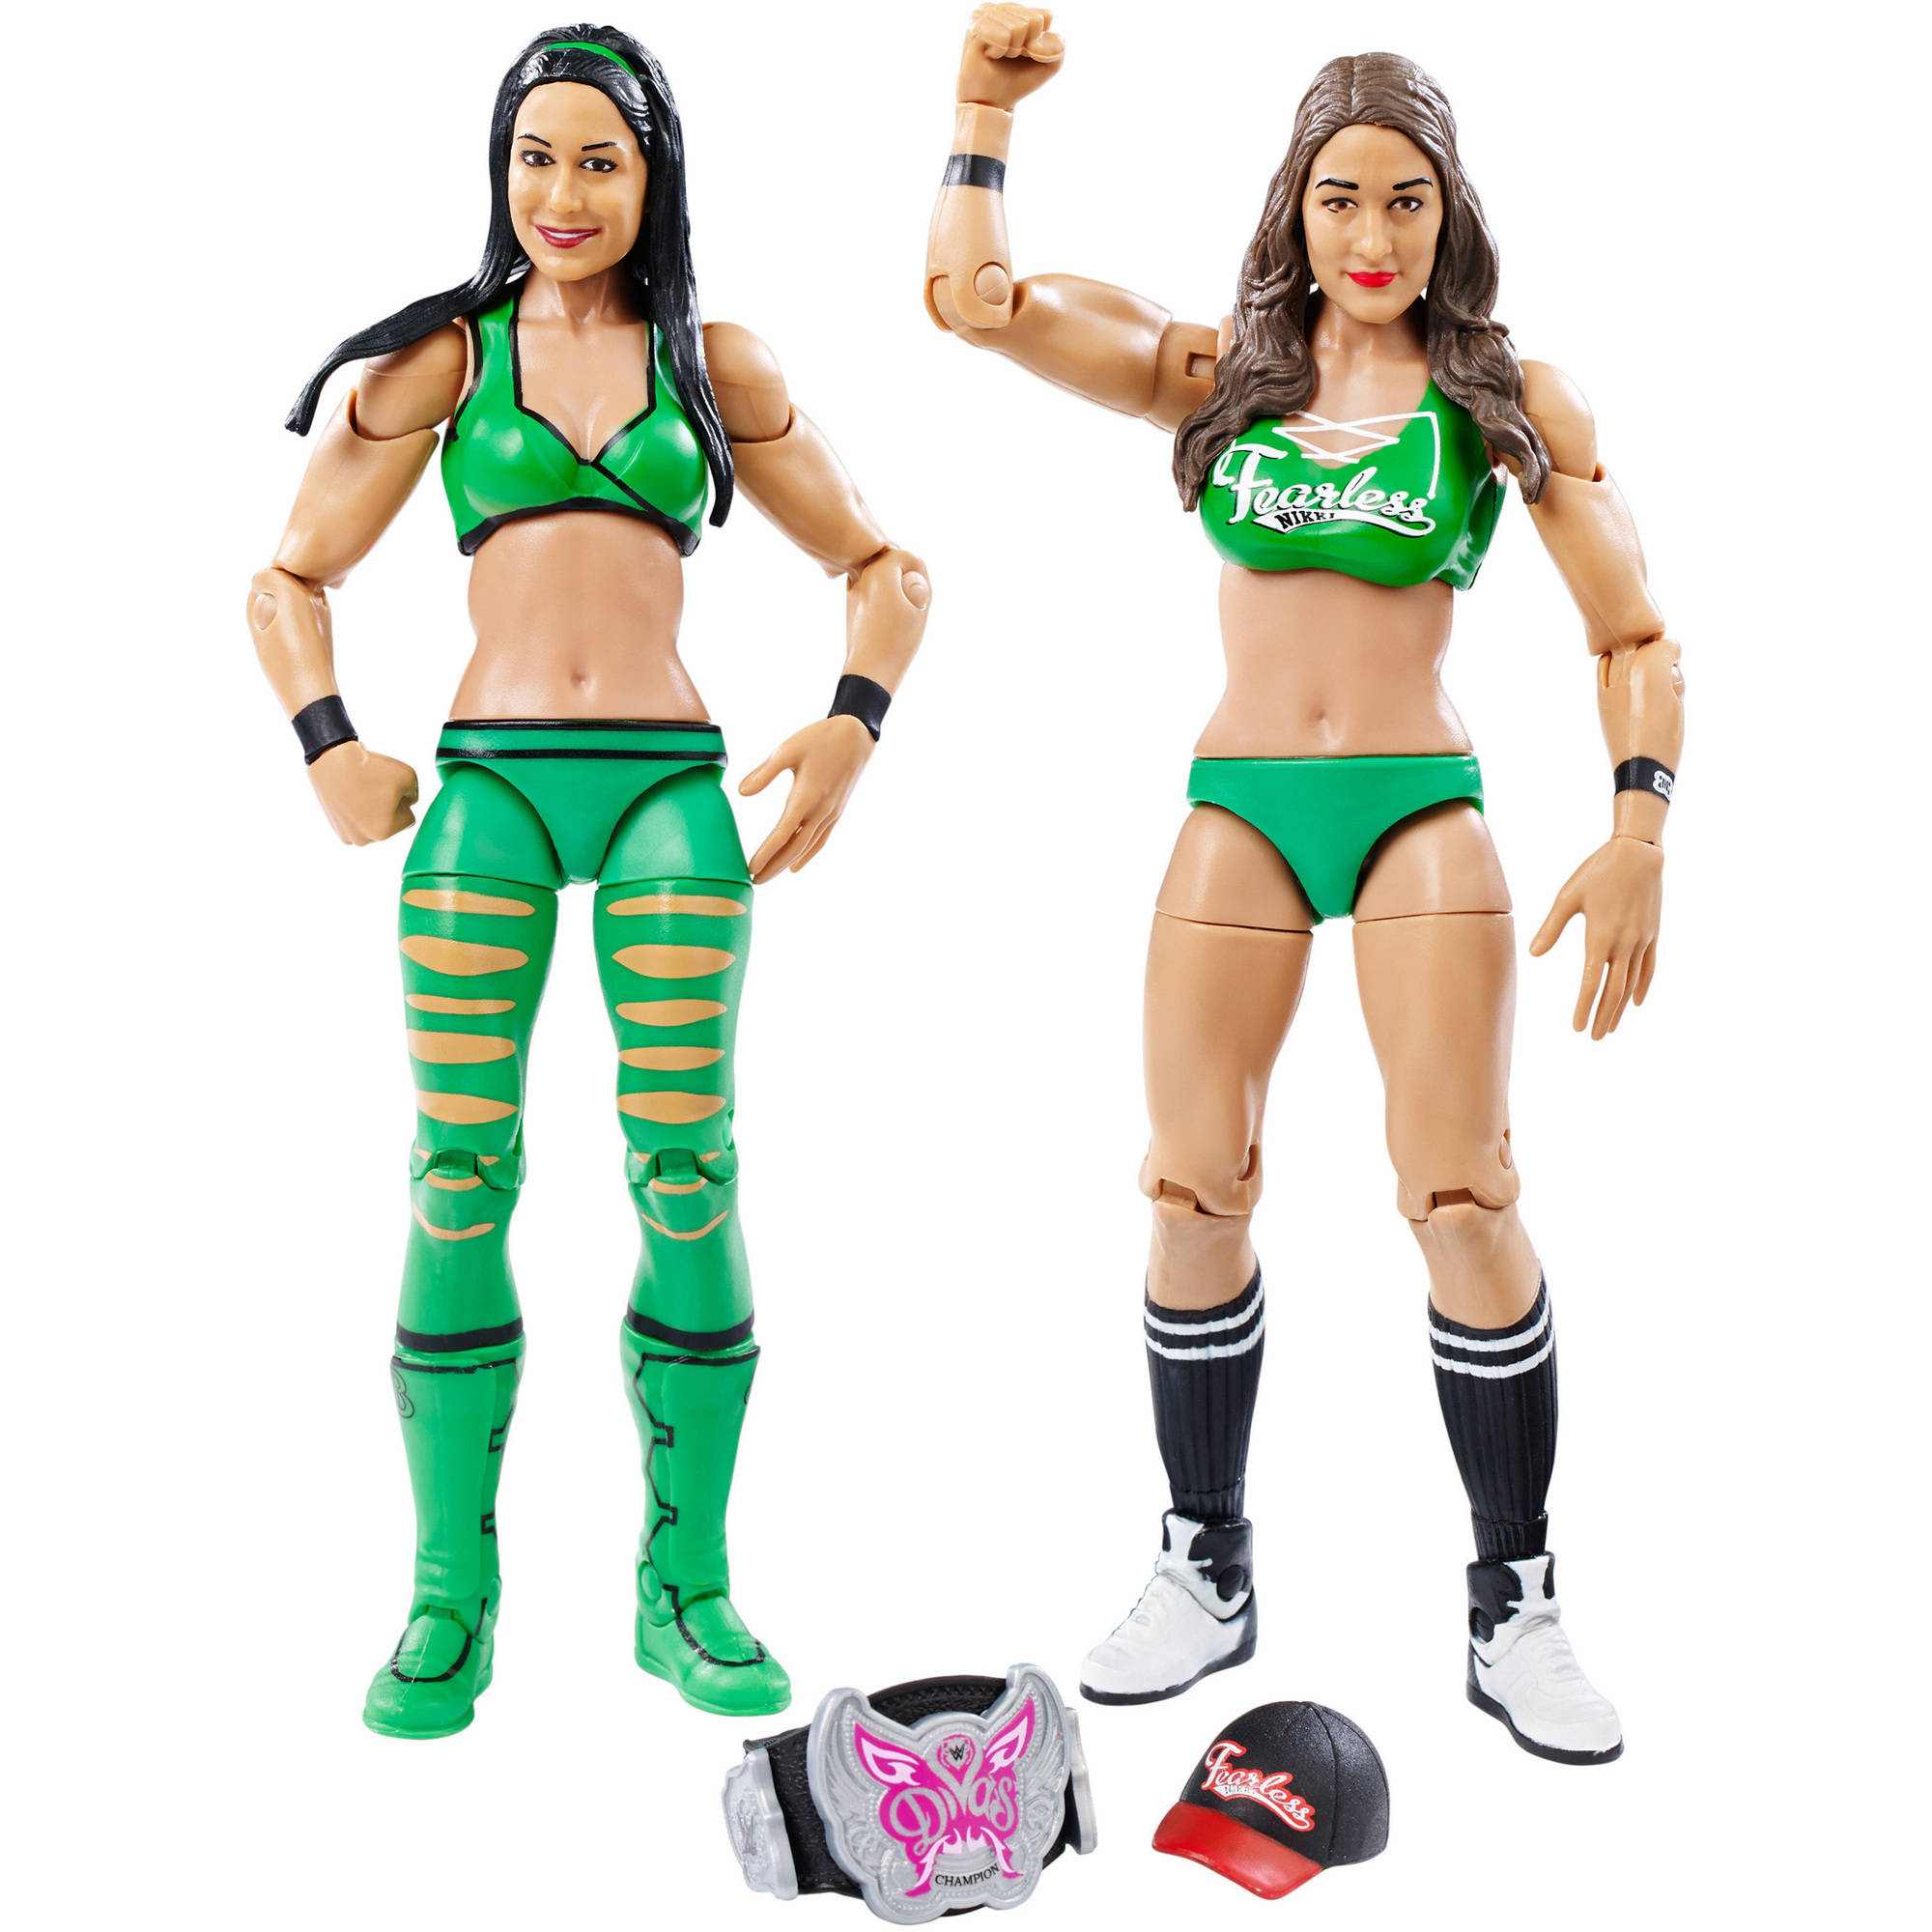 WWE 2-Pack Brie and Nikki Bella Figures